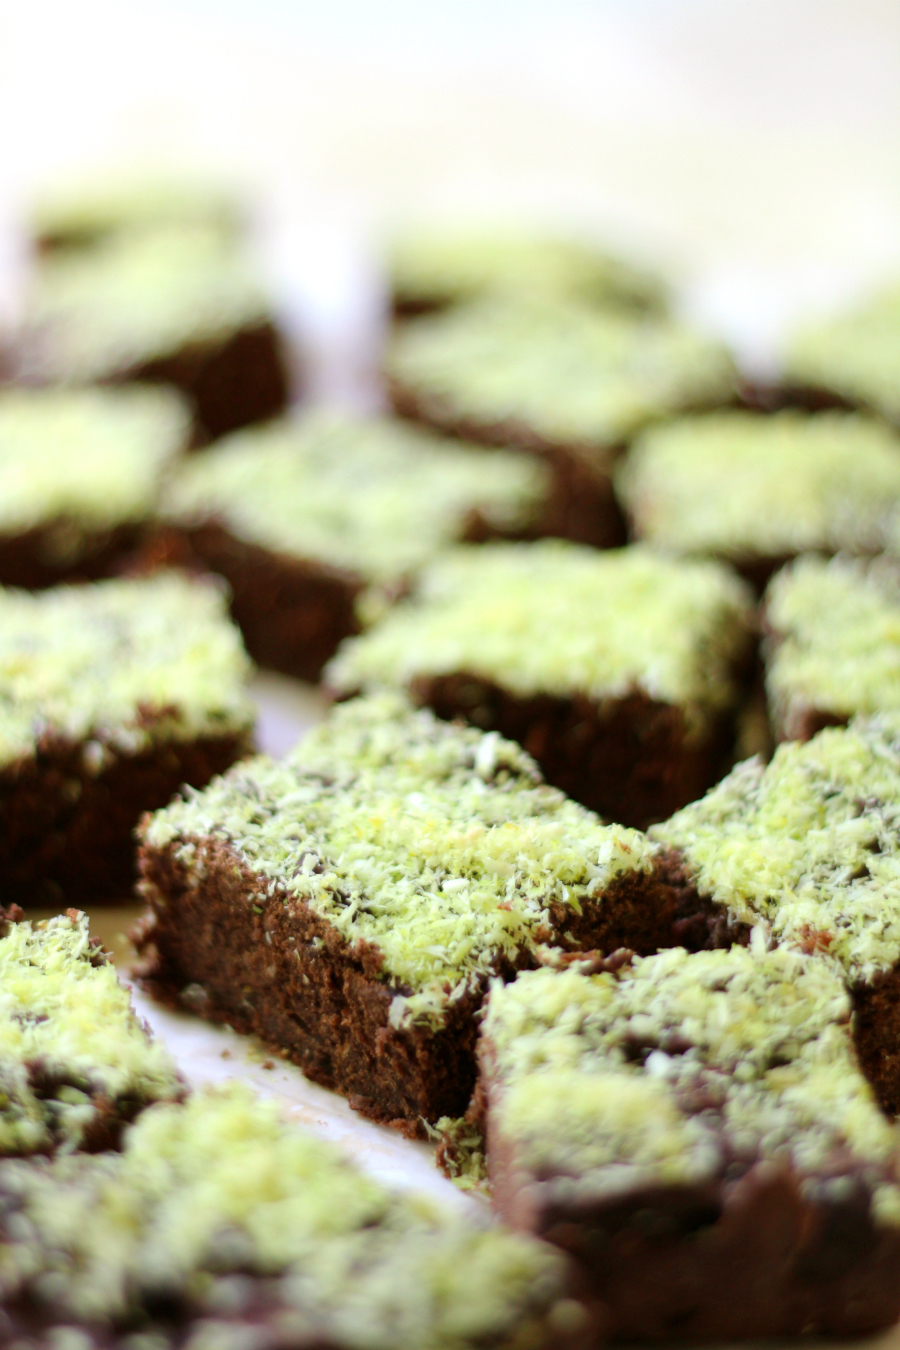 Mini Mint Chocolate Brownies (Gluten-Free, Vegan, Allergy-Free) | Strength and Sunshine @RebeccaGF666 Mini Mint Chocolate Brownies for when you need a little bite of something sweet and refreshing! This little dessert recipe is gluten-free, vegan, and allergy-free! Naturally sweetened for a healthy chocolate fix!